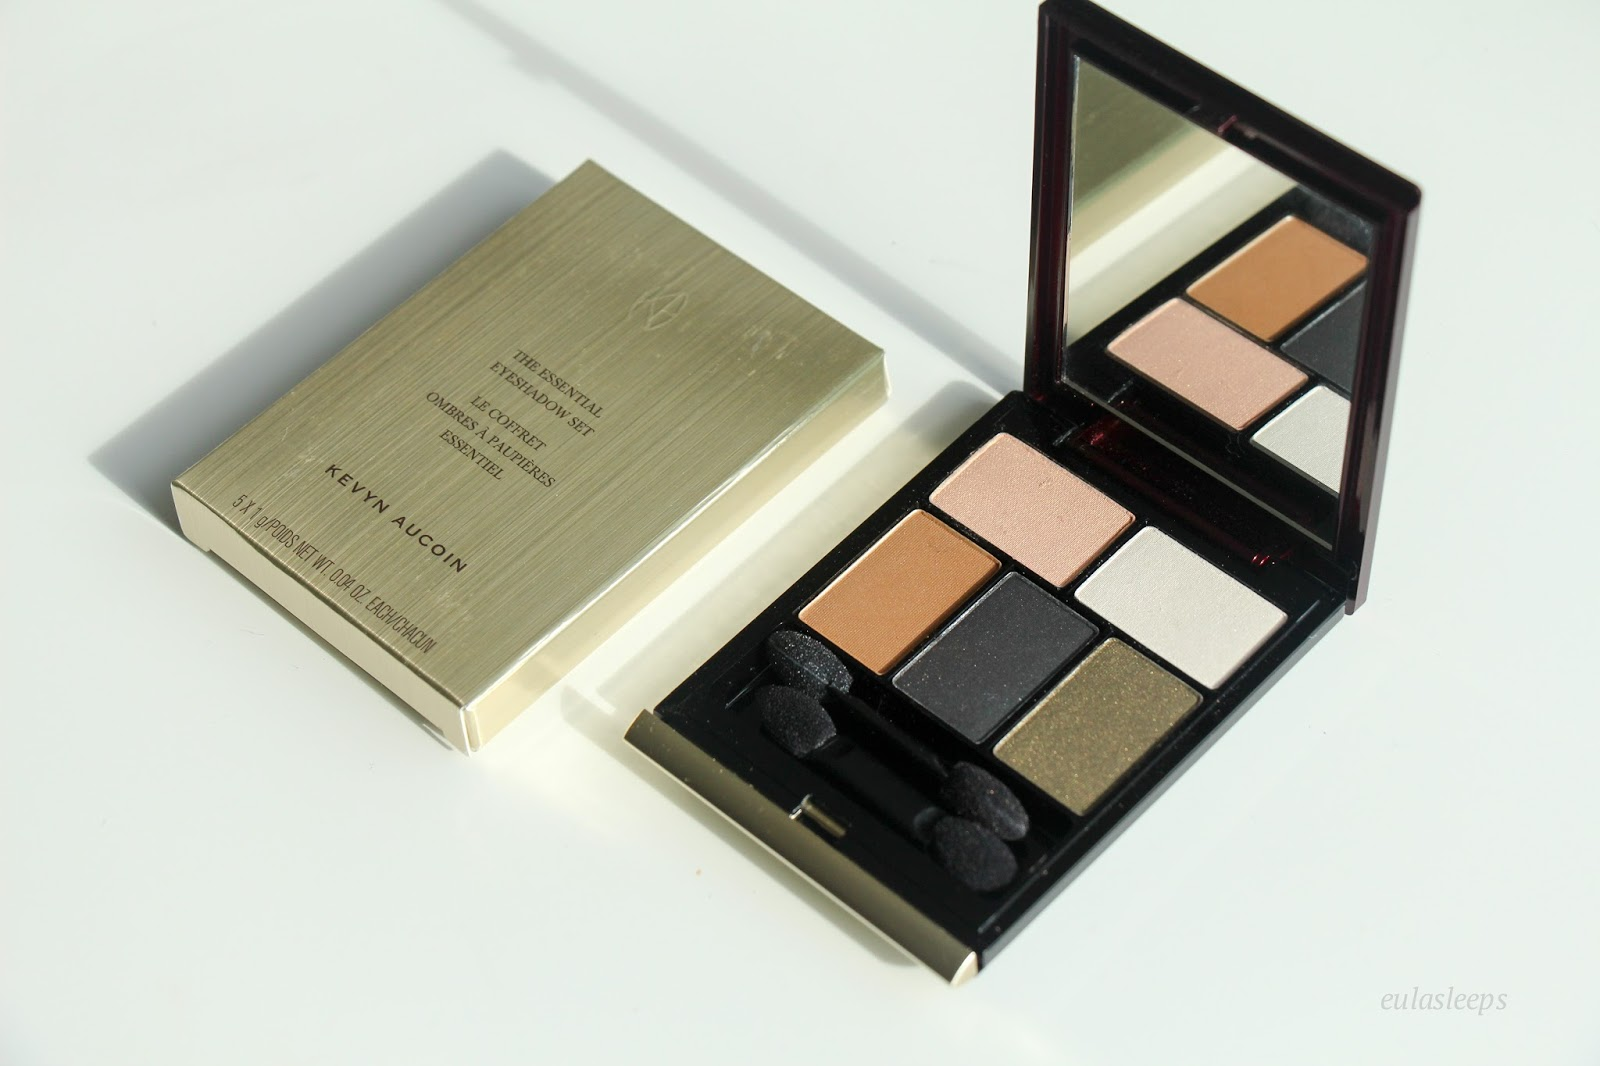 Eula Sleeps Kevyn Aucoin The Essential Eyeshadow Set 4 1 Eye Shadow Has To Be My Favorite Makeup Product Its An Easy Way Change Your Entire Look Whether You Want Appear Younger Fresher Darker